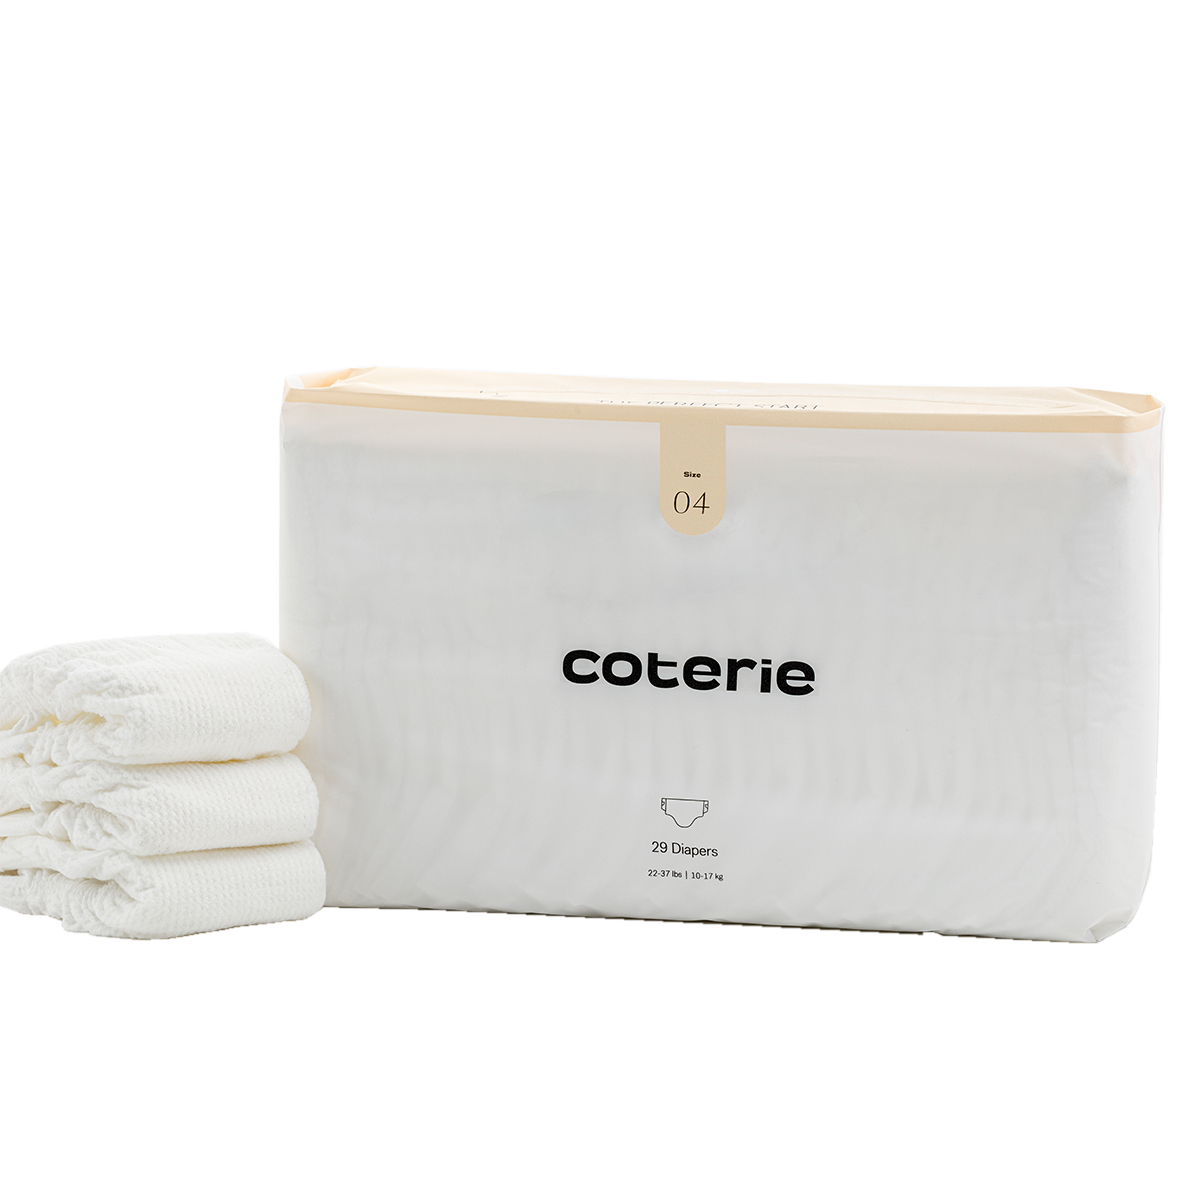 Coterie Diapers 1 Month Supply